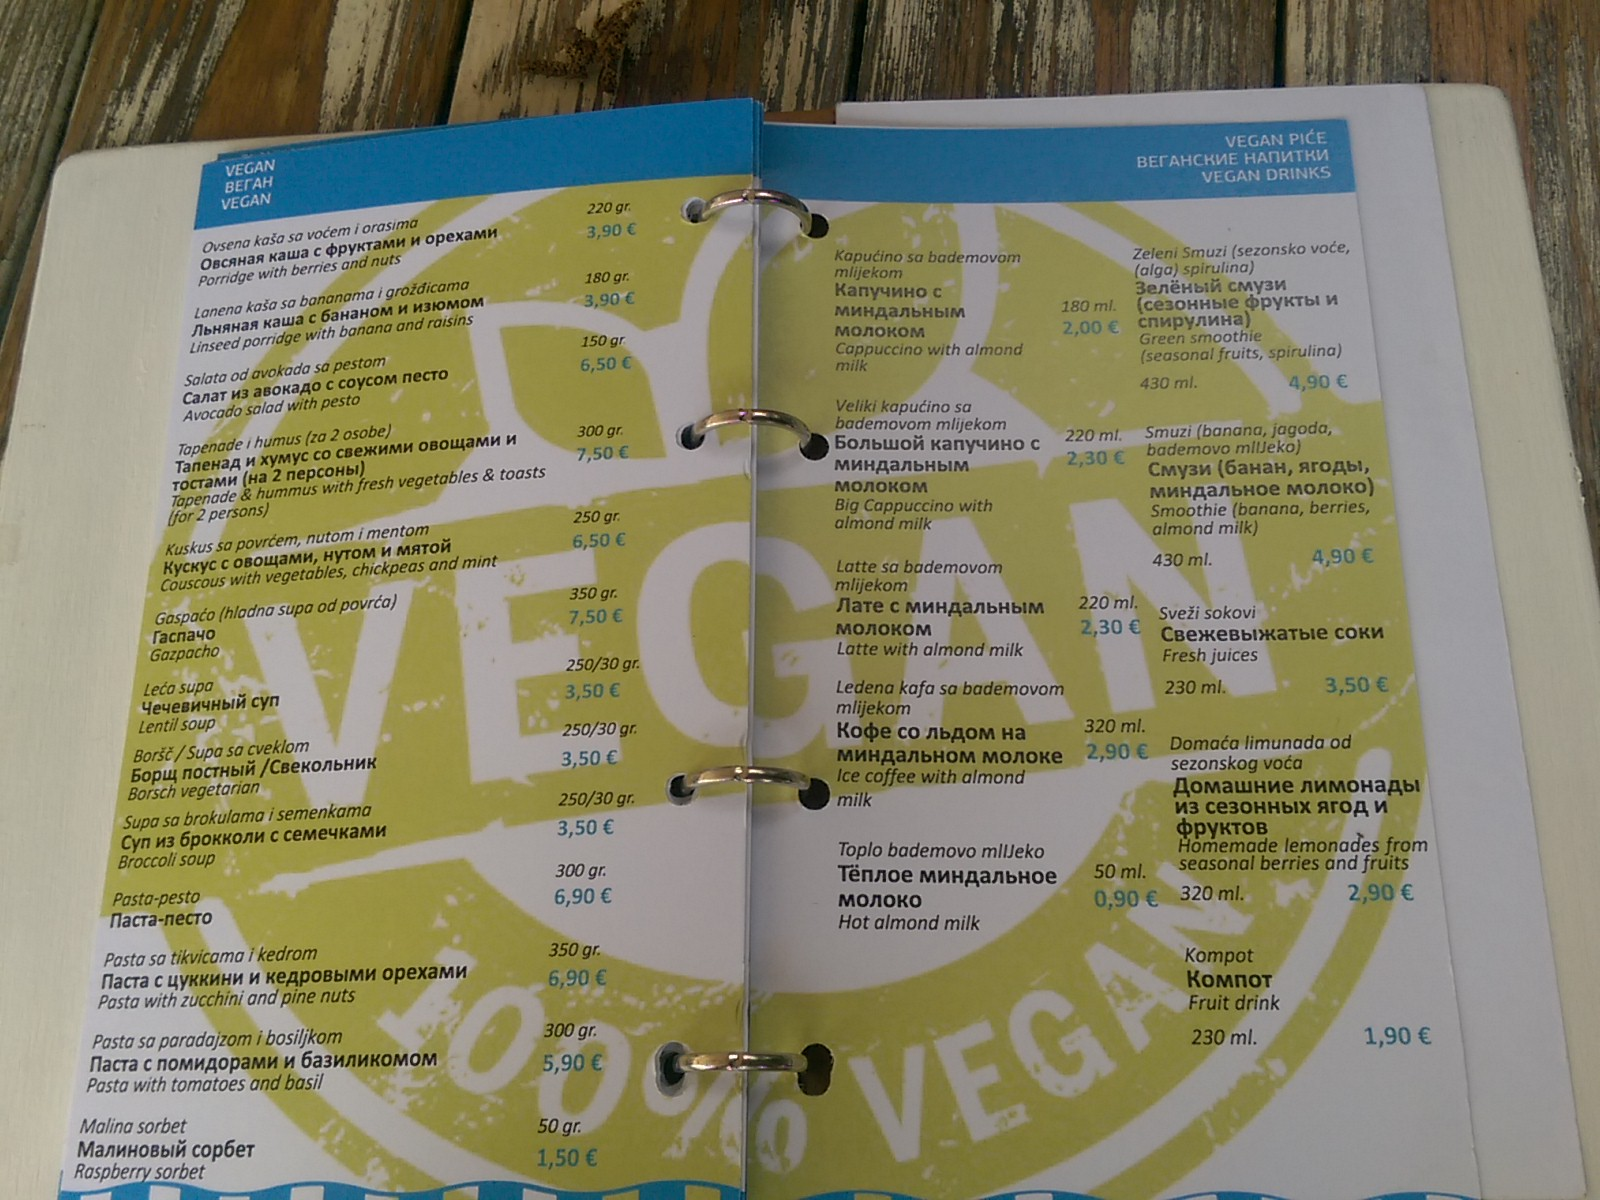 An open menu on a table with VEGAN watermark